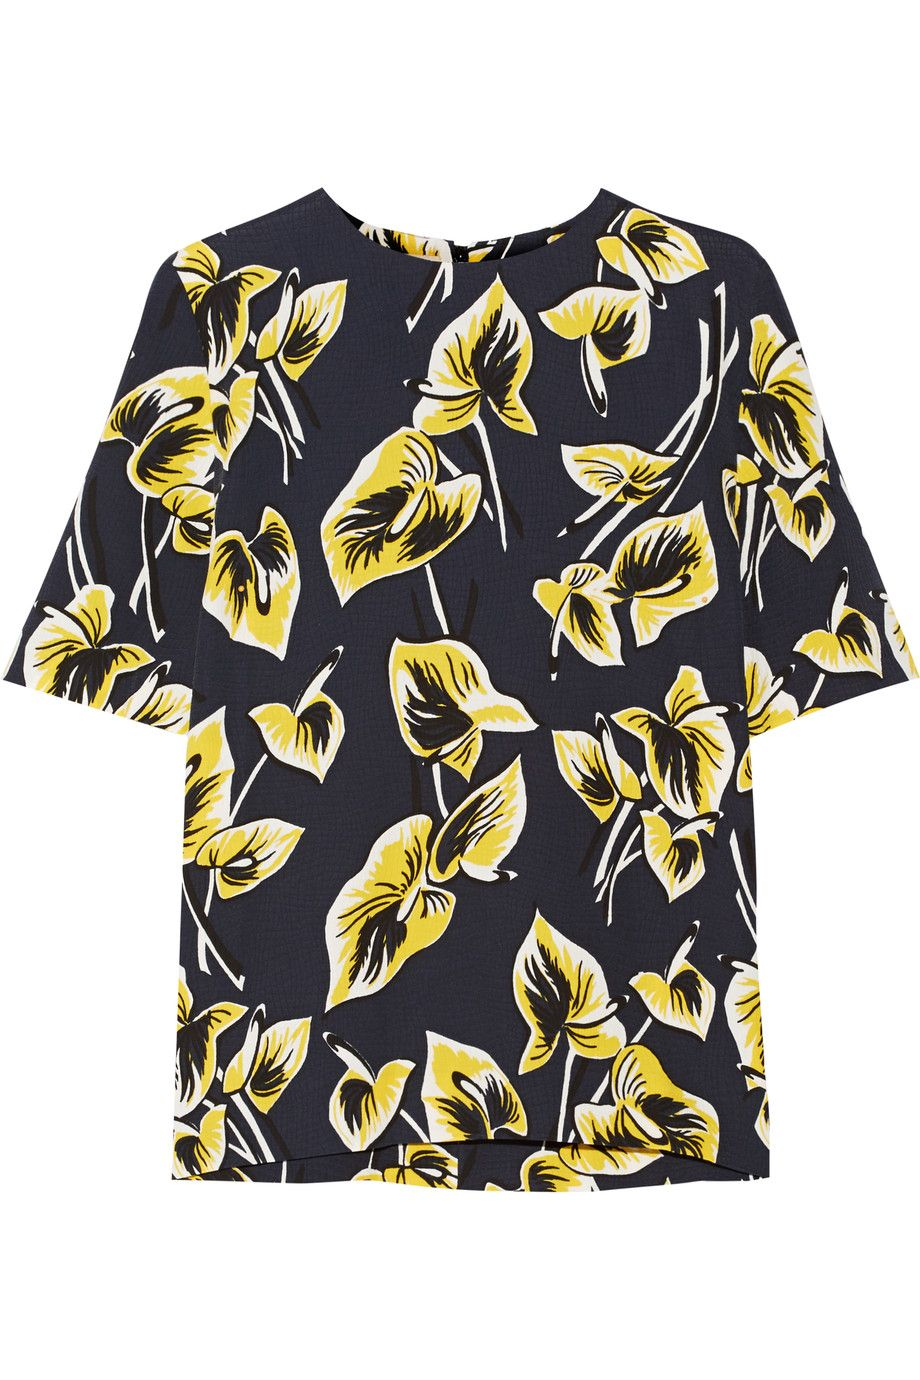 Shop on-sale MARNI Floral-print matelassé top. Browse other discount  designer Sleeveless & more on The Most Fashionable Fashion Outlet, THE  OUTNET.